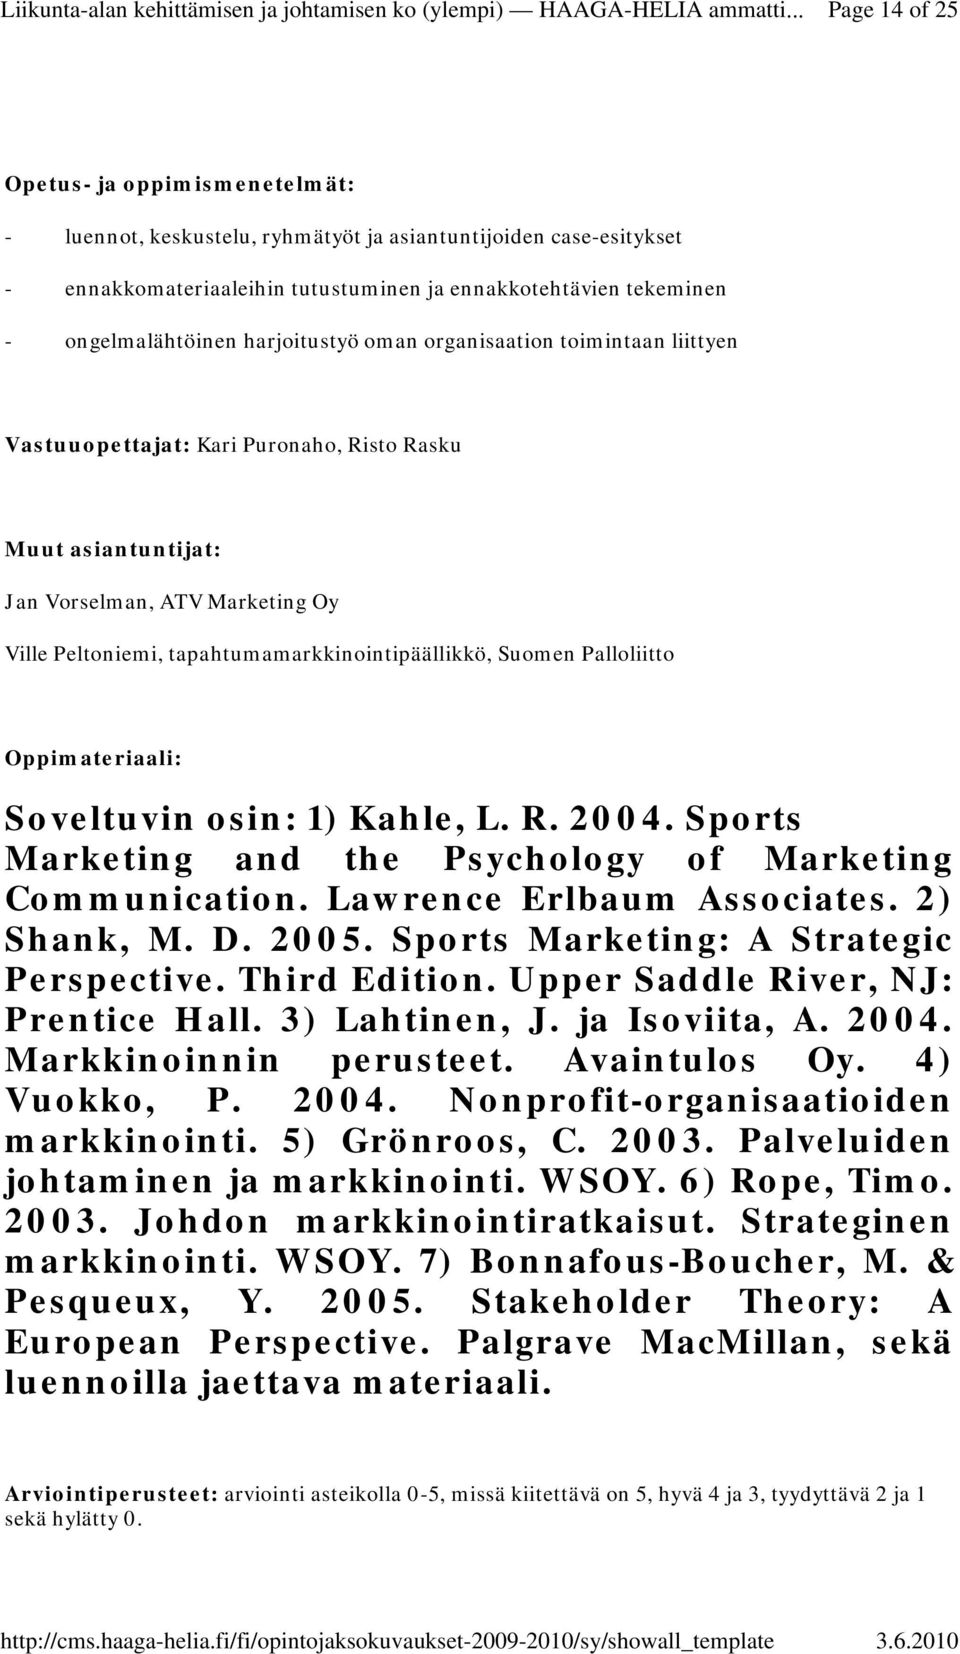 Suomen Palloliitto Oppimateriaali: Soveltuvin osin: 1) Kahle, L. R. 2004. Sports Marketing and the Psychology of Marketing Communication. Lawrence Erlbaum Associates. 2) Shank, M. D. 2005.